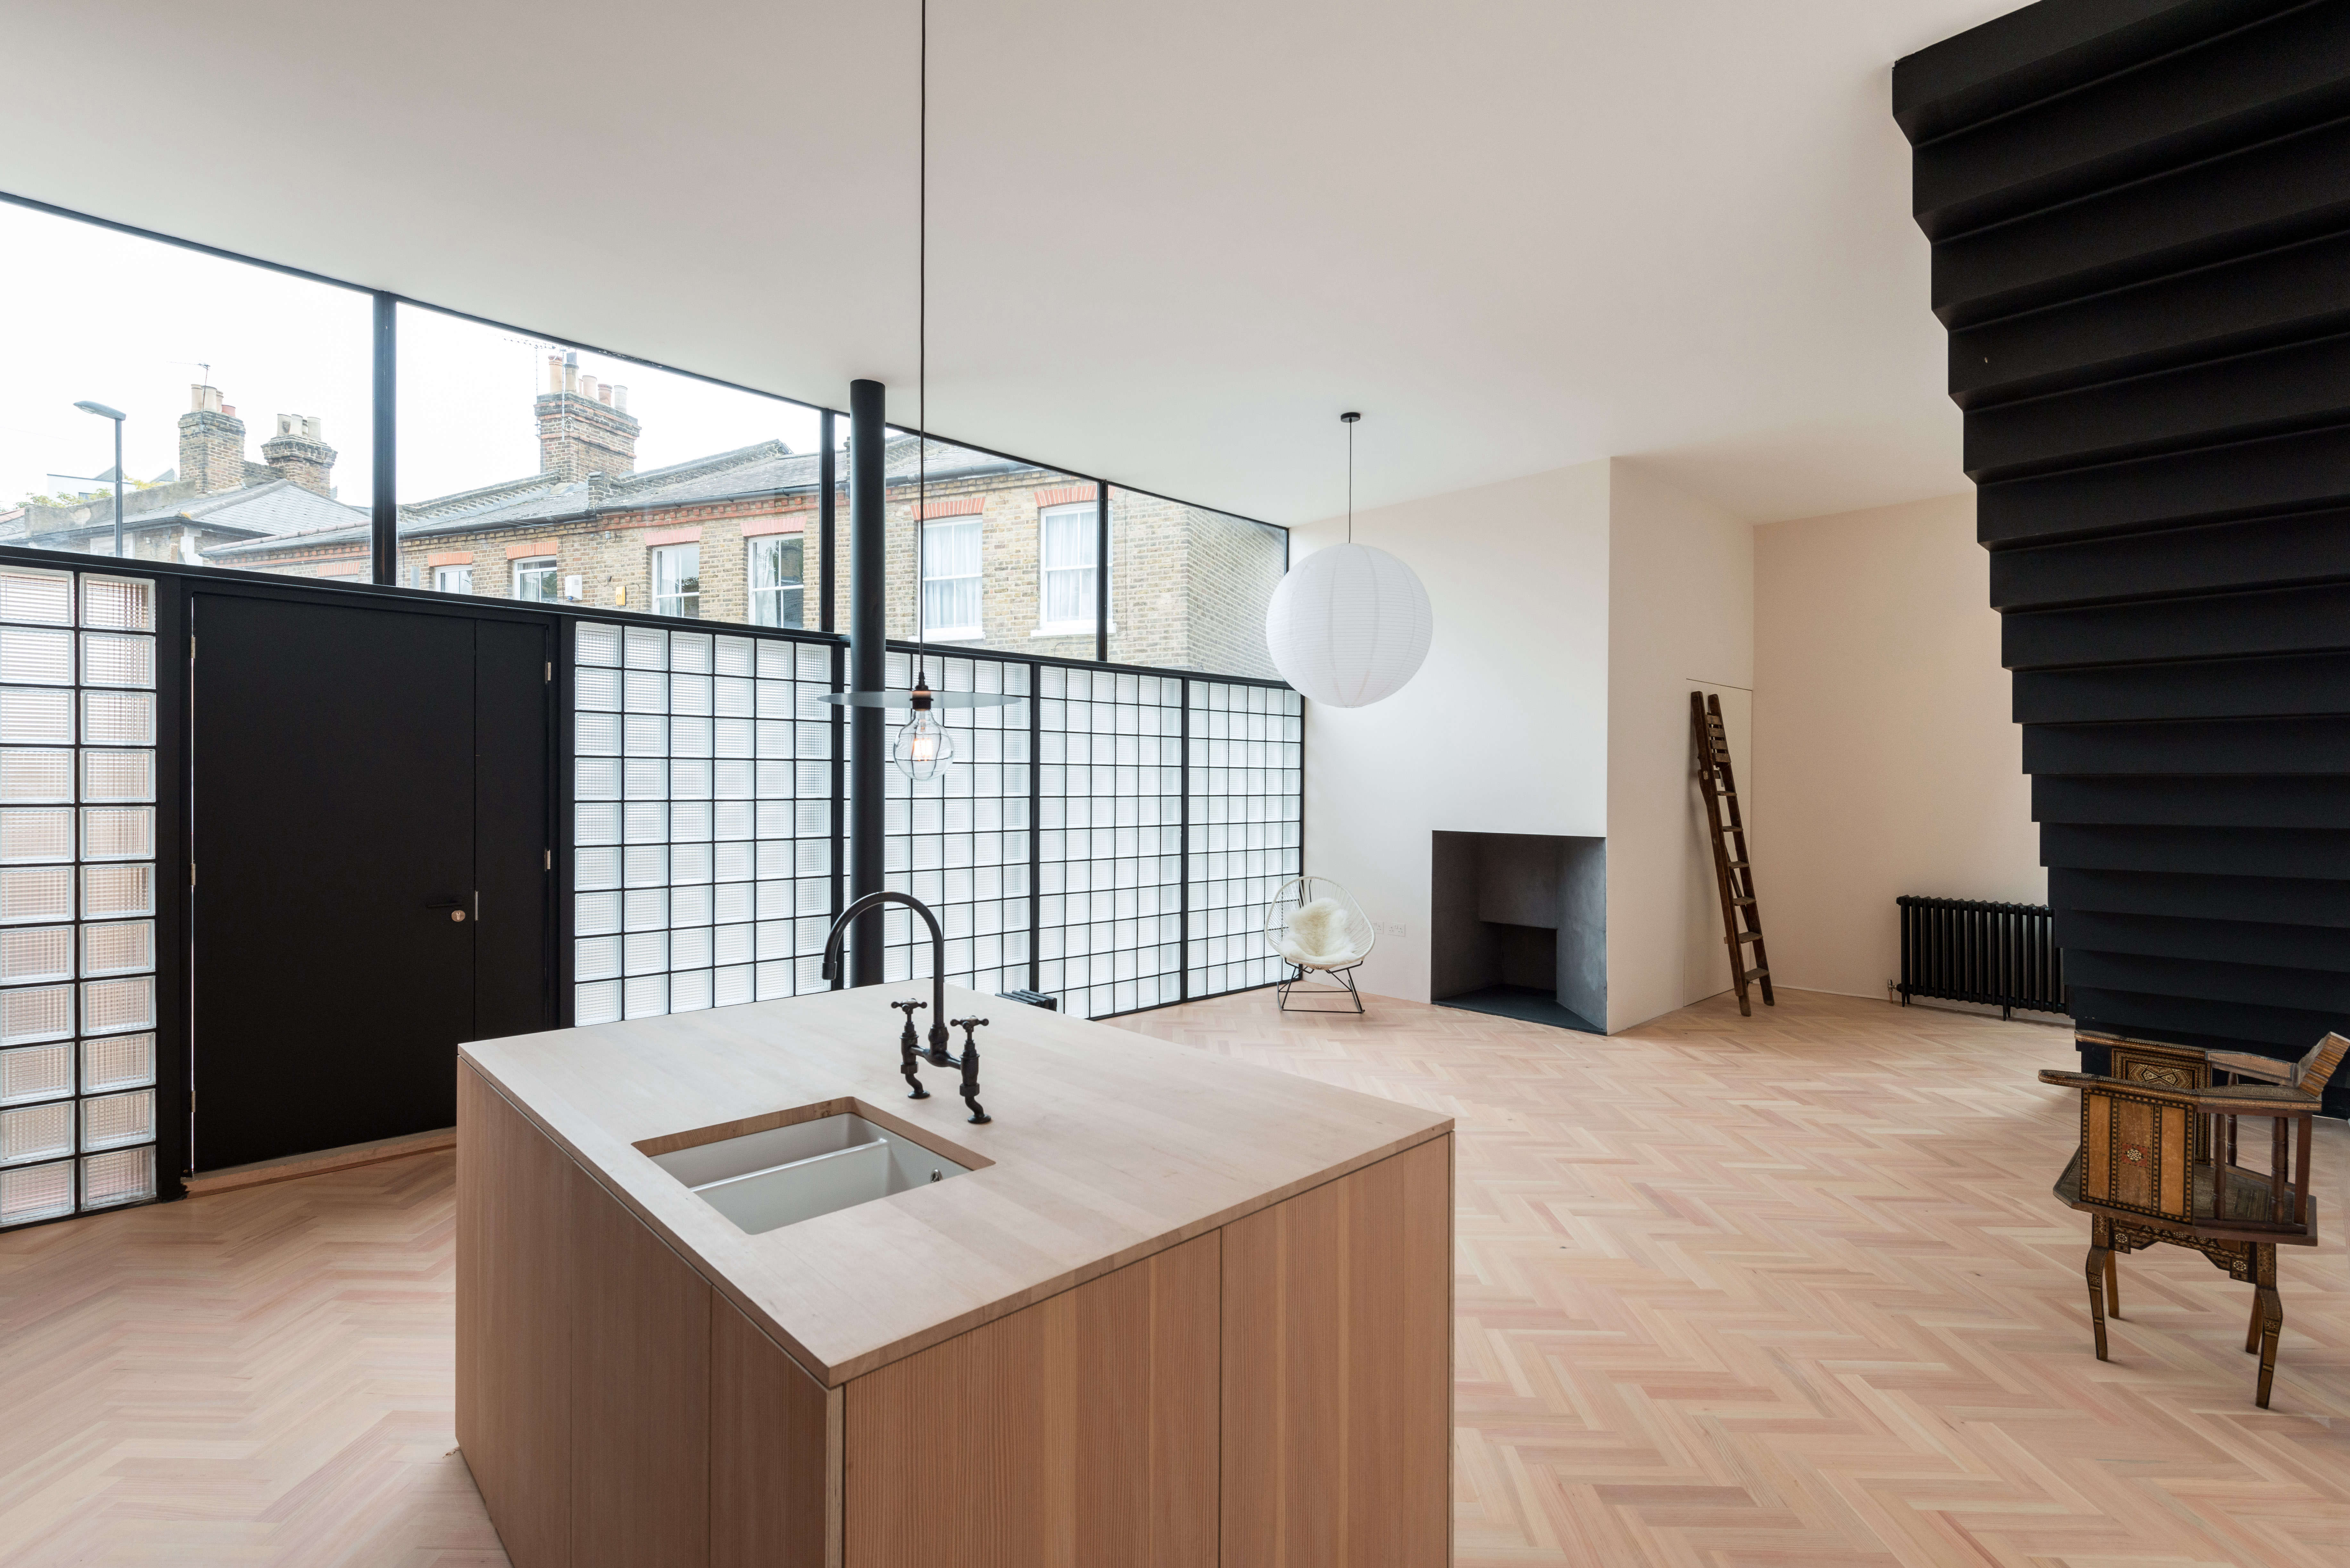 On the Market A London NewBuild Inspired by the Iconic Maison de Verre imperial club frame property london 18